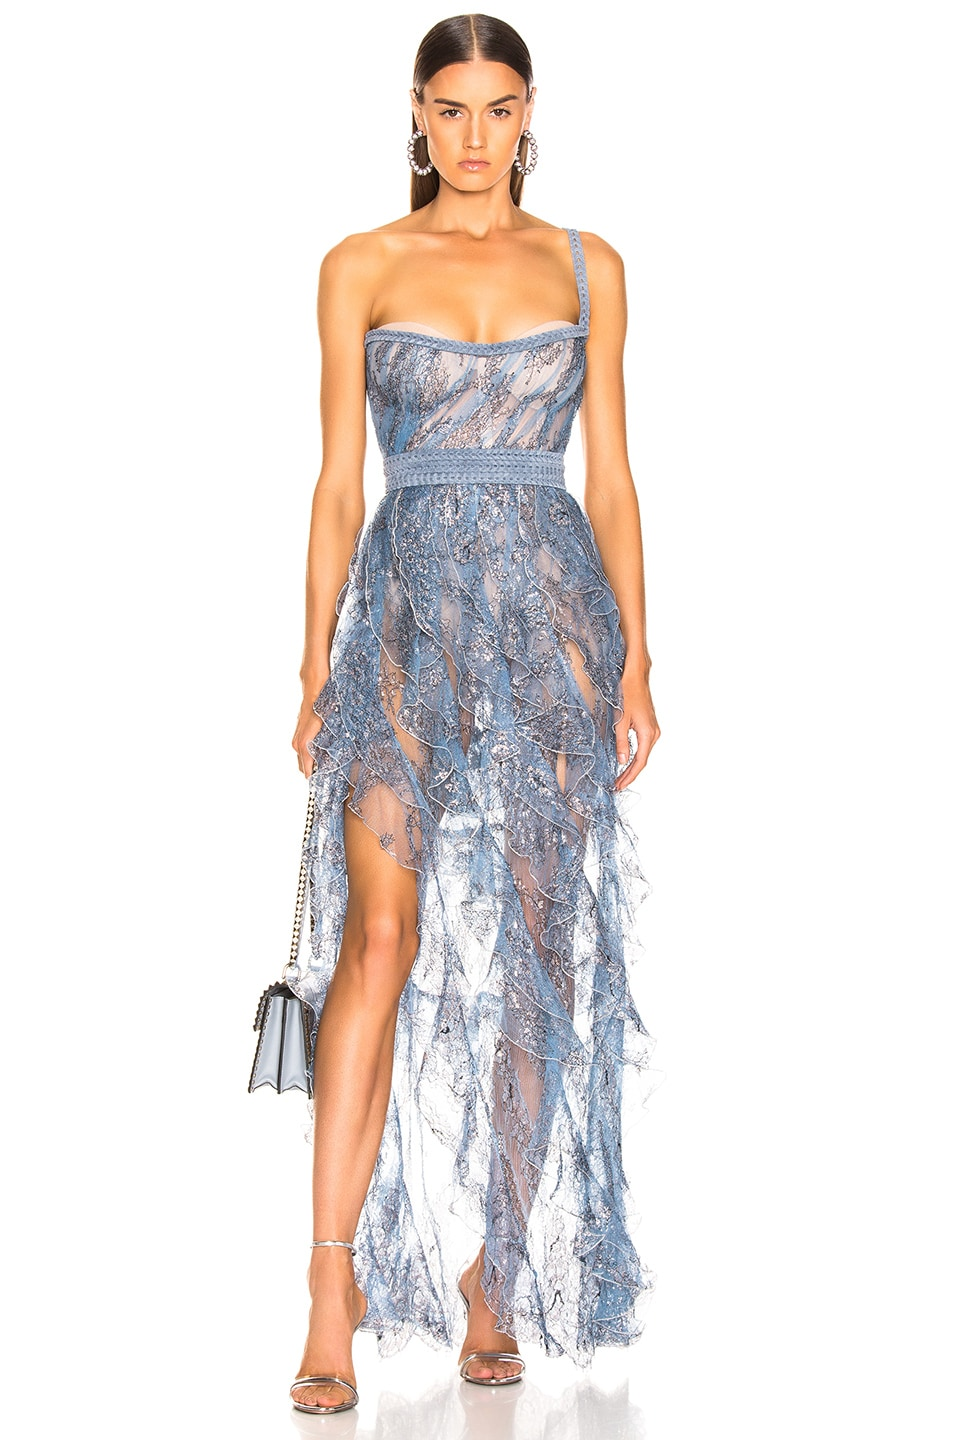 8d2f893938a Image 1 of Aadnevik Sparkling Lace Bustier Gown in Blue